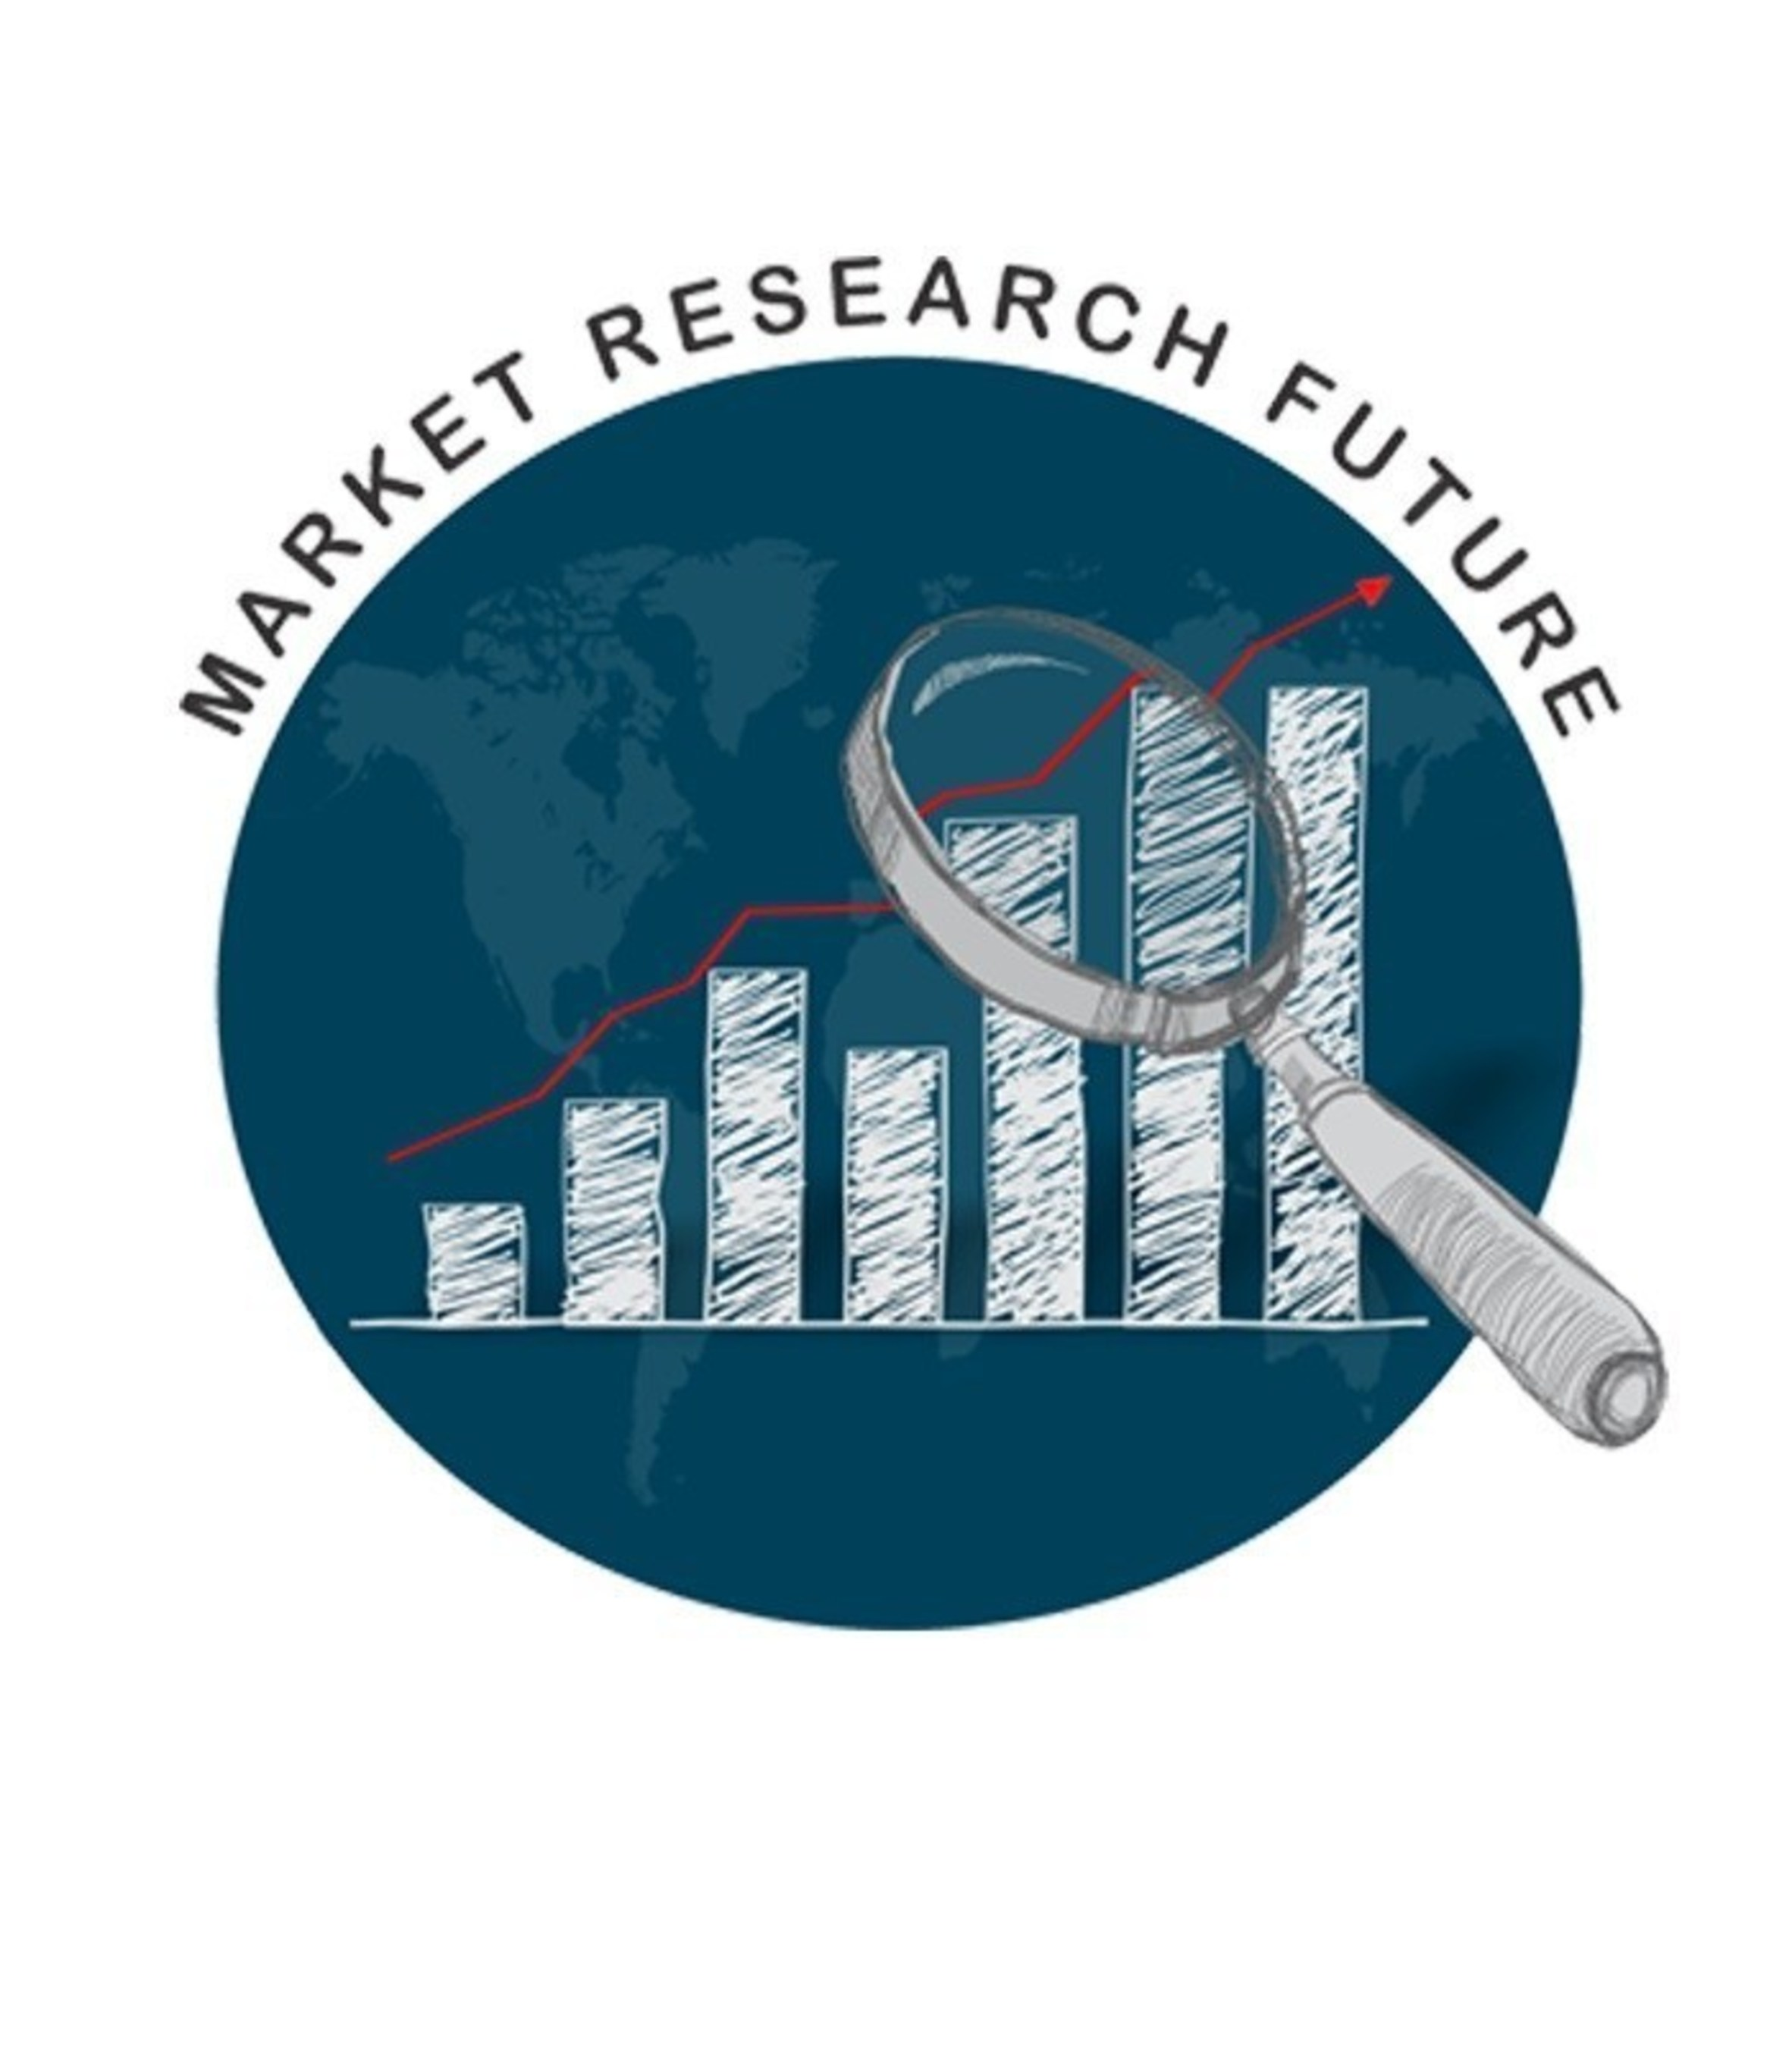 North America Led Security Robots Market Analysis and Forecasts to 2027